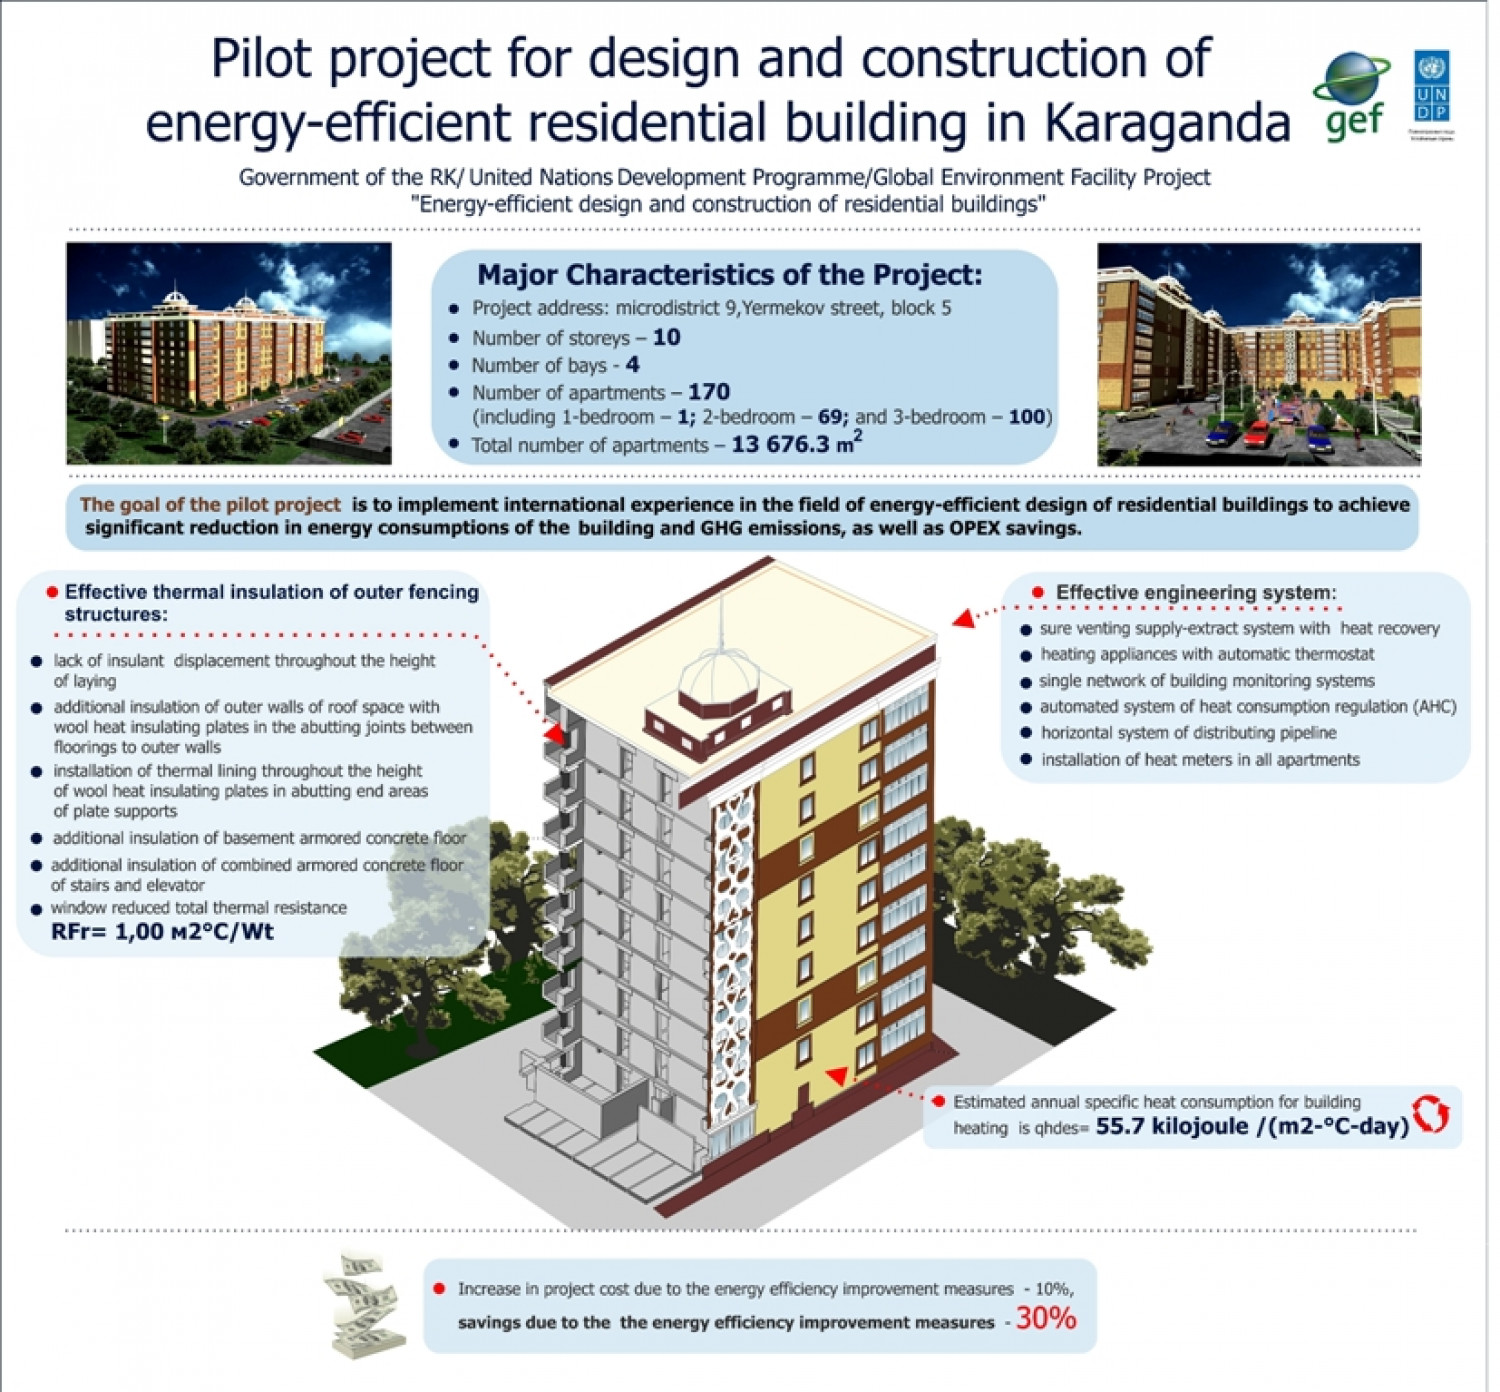 pilot project for design and construction of energy